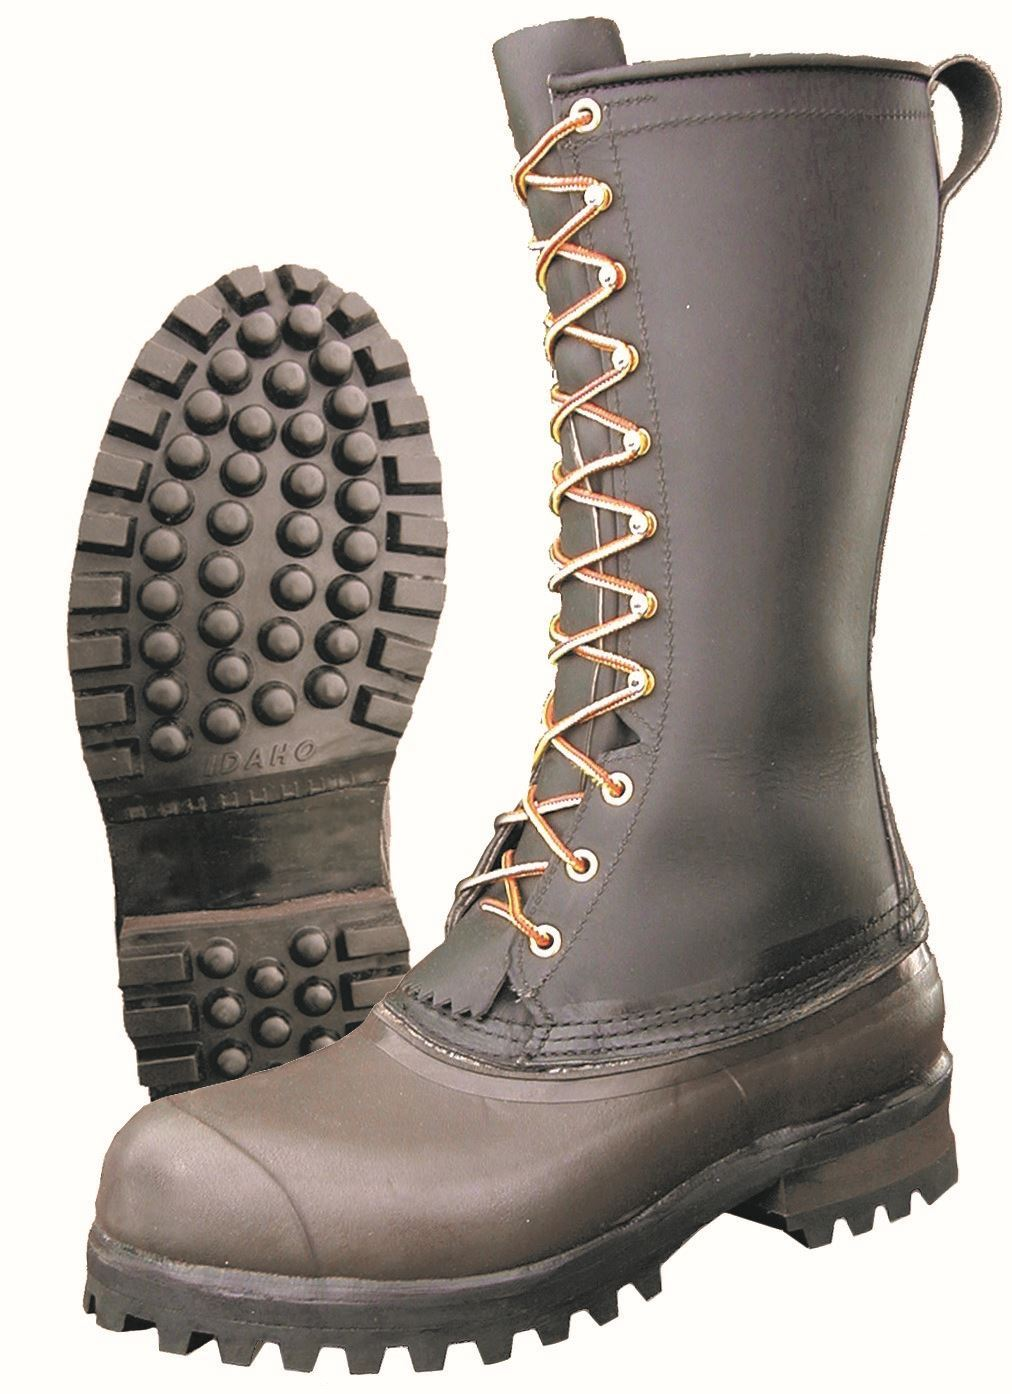 Thinsulate Lineman Pac Hoffman Boots For All Your Boot